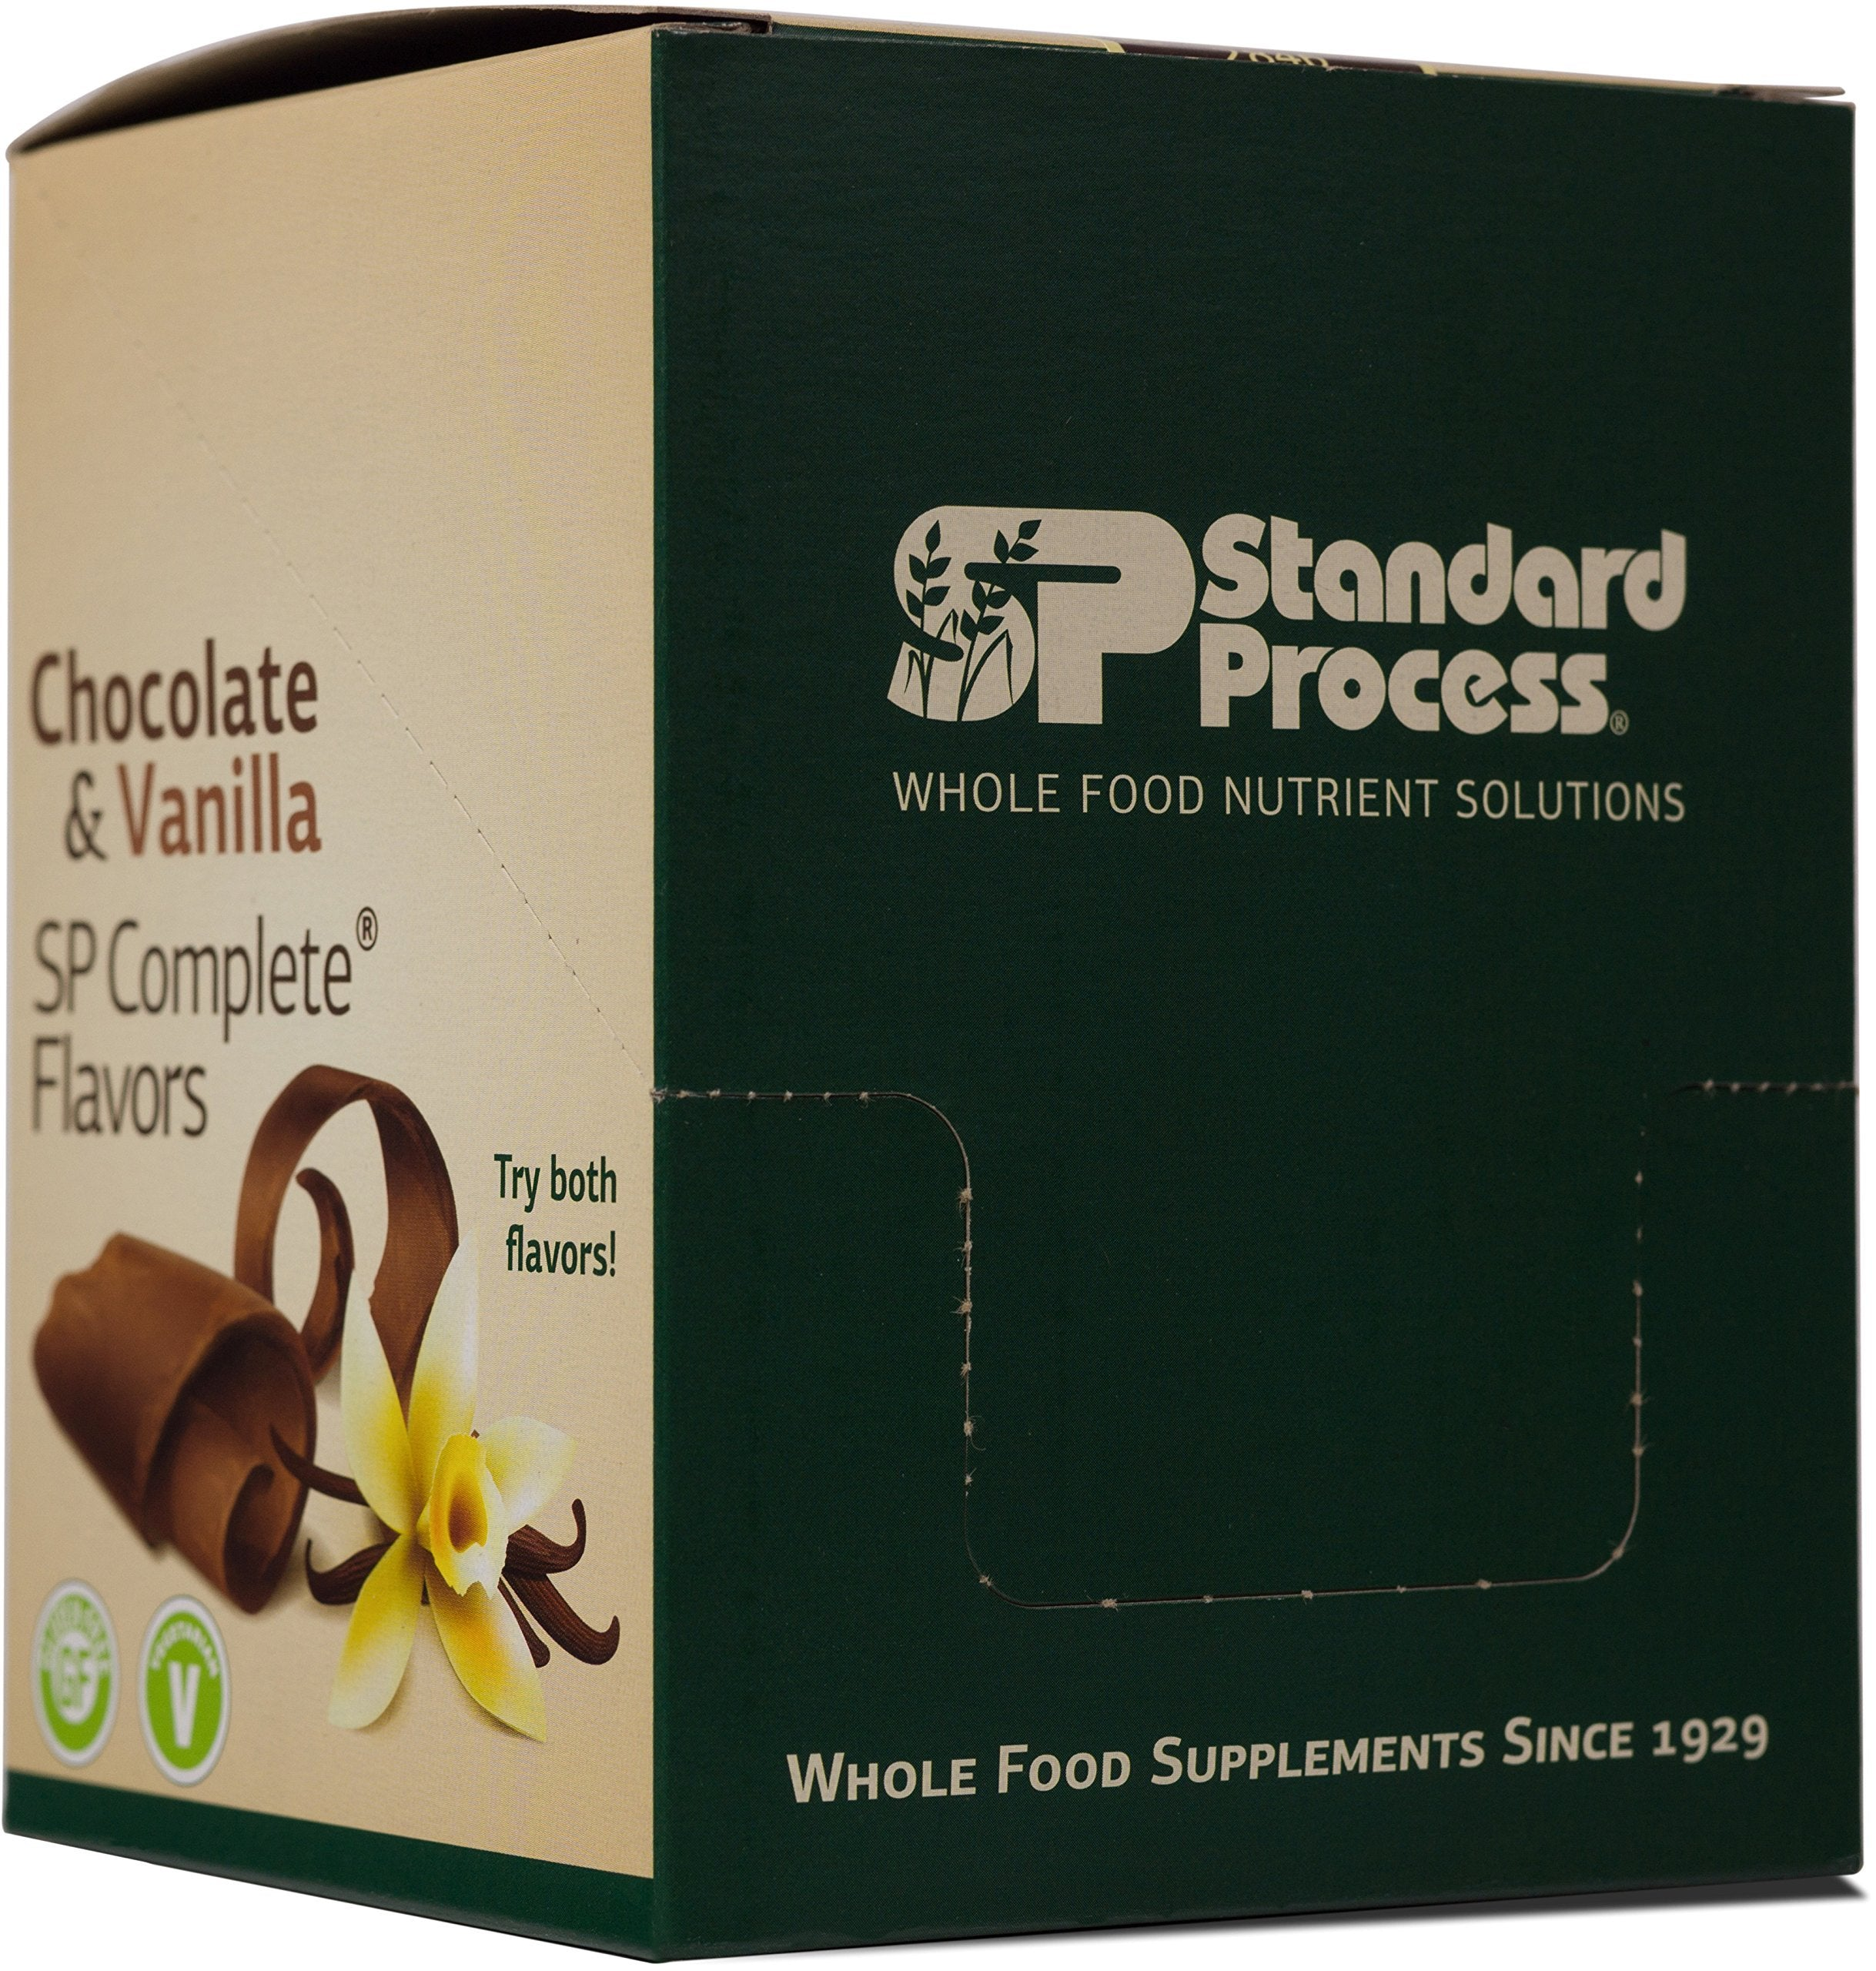 Standard Process - SP Complete Chocolate - Whole Food Nutritional Supplement, Protein, Calcium, Antioxidants, Gluten Free and Vegetarian - 10 Pouch Pack (1.1-oz. Packets)